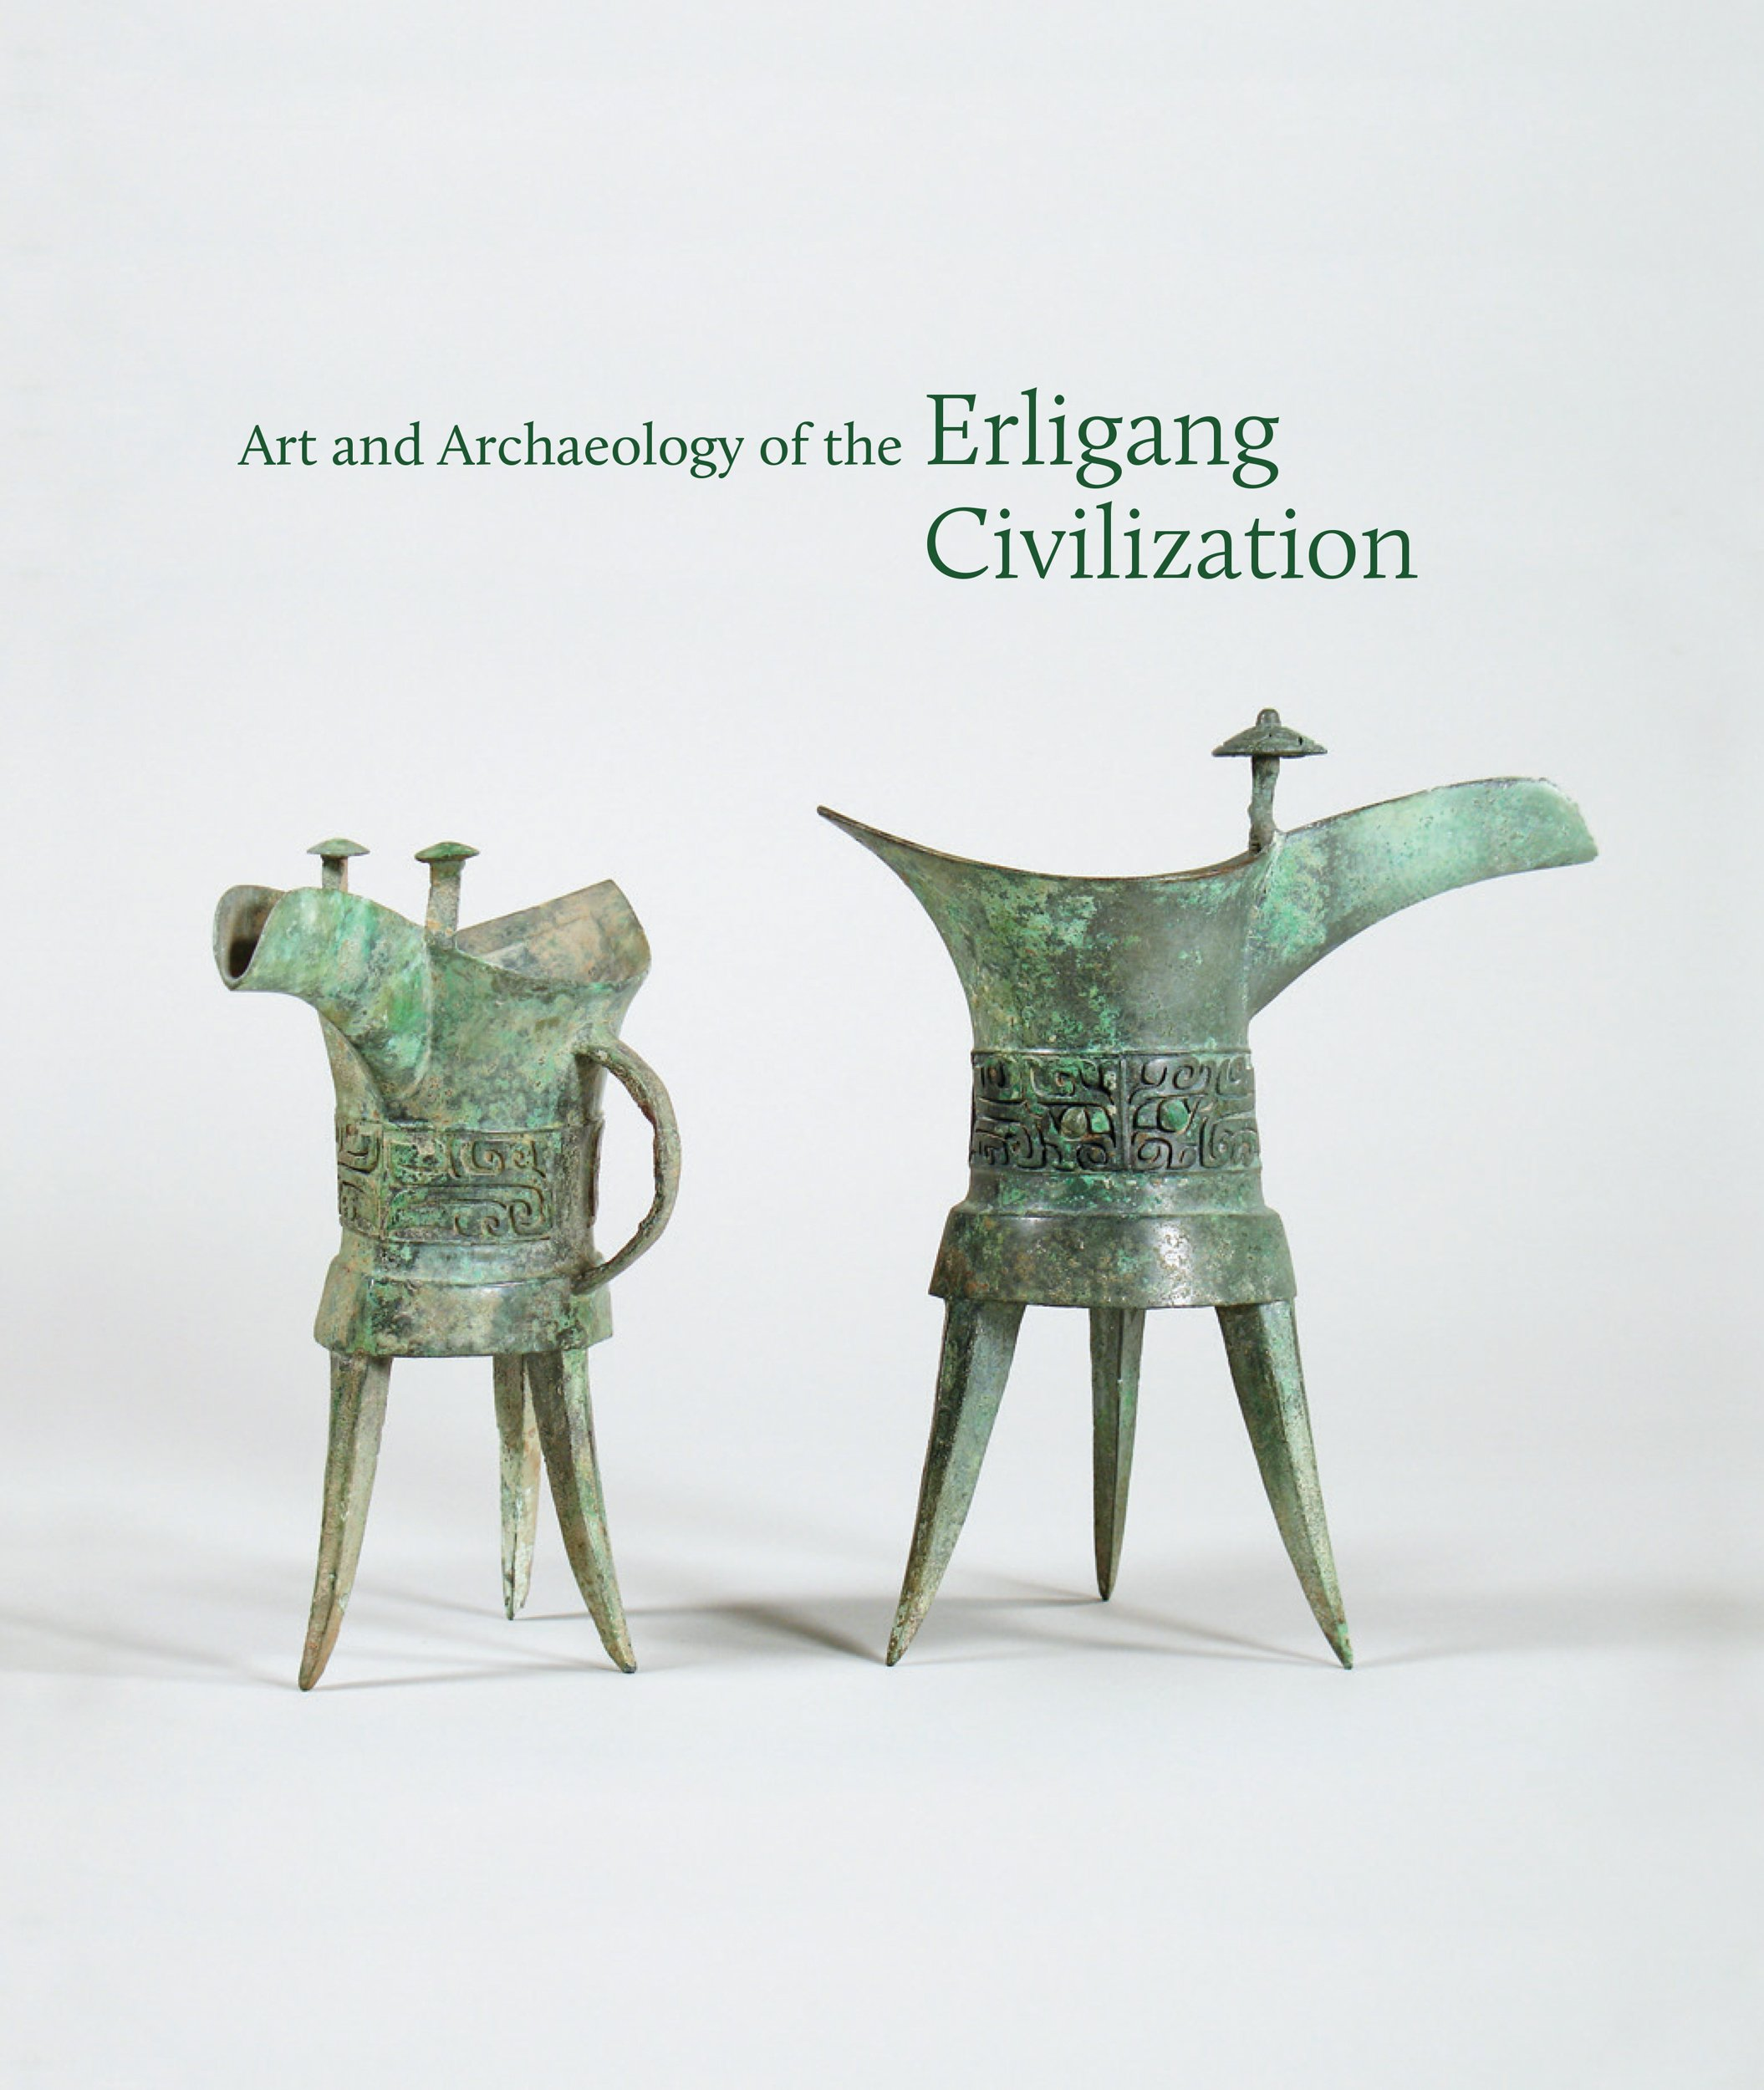 Art and Archaeology of the Erligang Civilization (Publications of the Department of Art and Archaeology, Princeton University) pdf epub